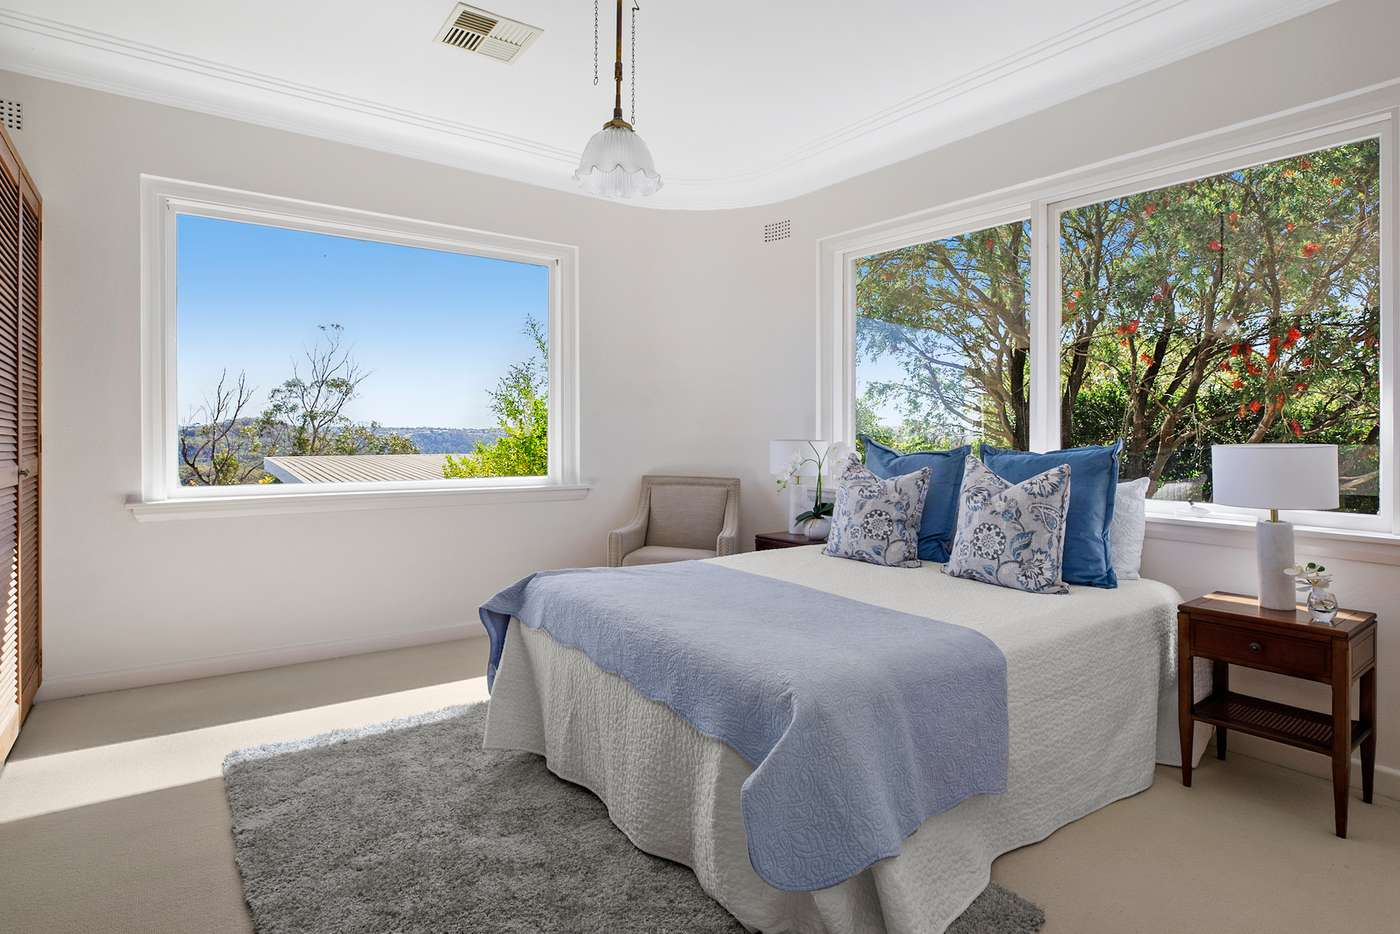 Sixth view of Homely house listing, 40 Castle Circuit, Seaforth NSW 2092